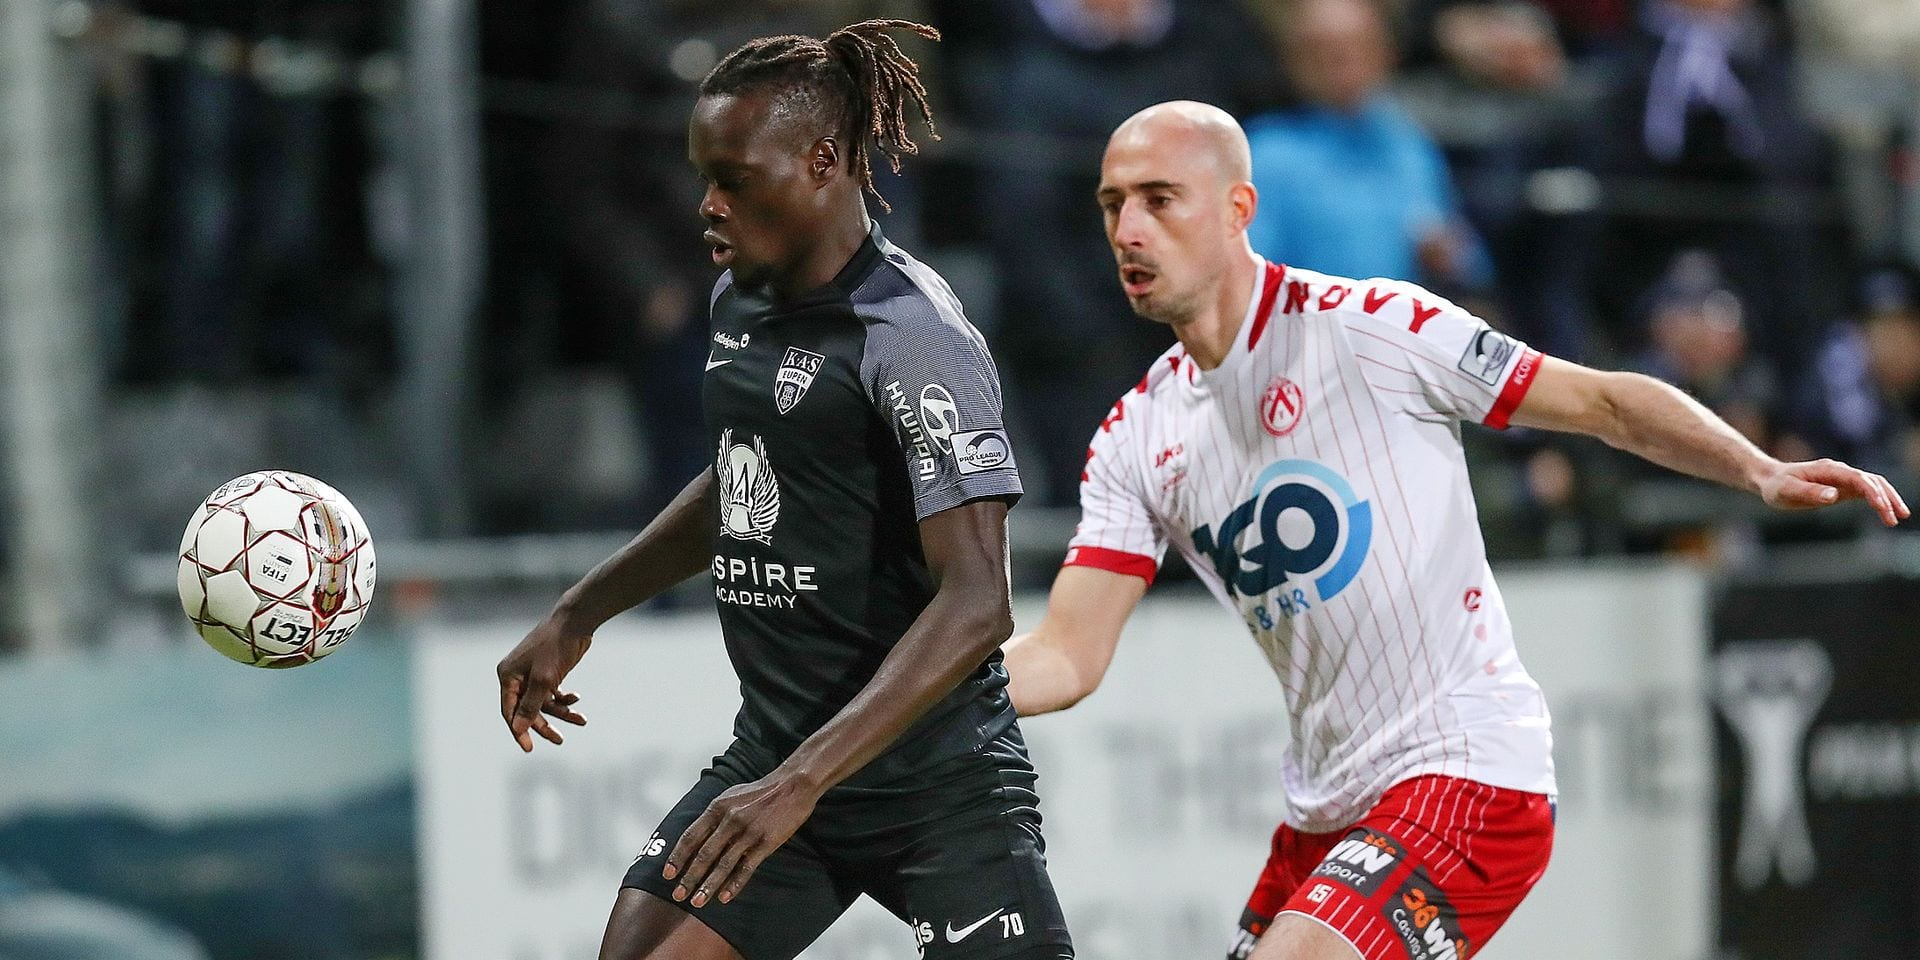 Eupen's Mamadou Fall and Kortrijk's Christophe Lepoint fight for the ball during a soccer match between KAS Eupen and KV Kortrijk, Saturday 09 February 2019 in Eupen, on the 25th day of the 'Jupiler Pro League' Belgian soccer championship season 2018-2019. BELGA PHOTO BRUNO FAHY